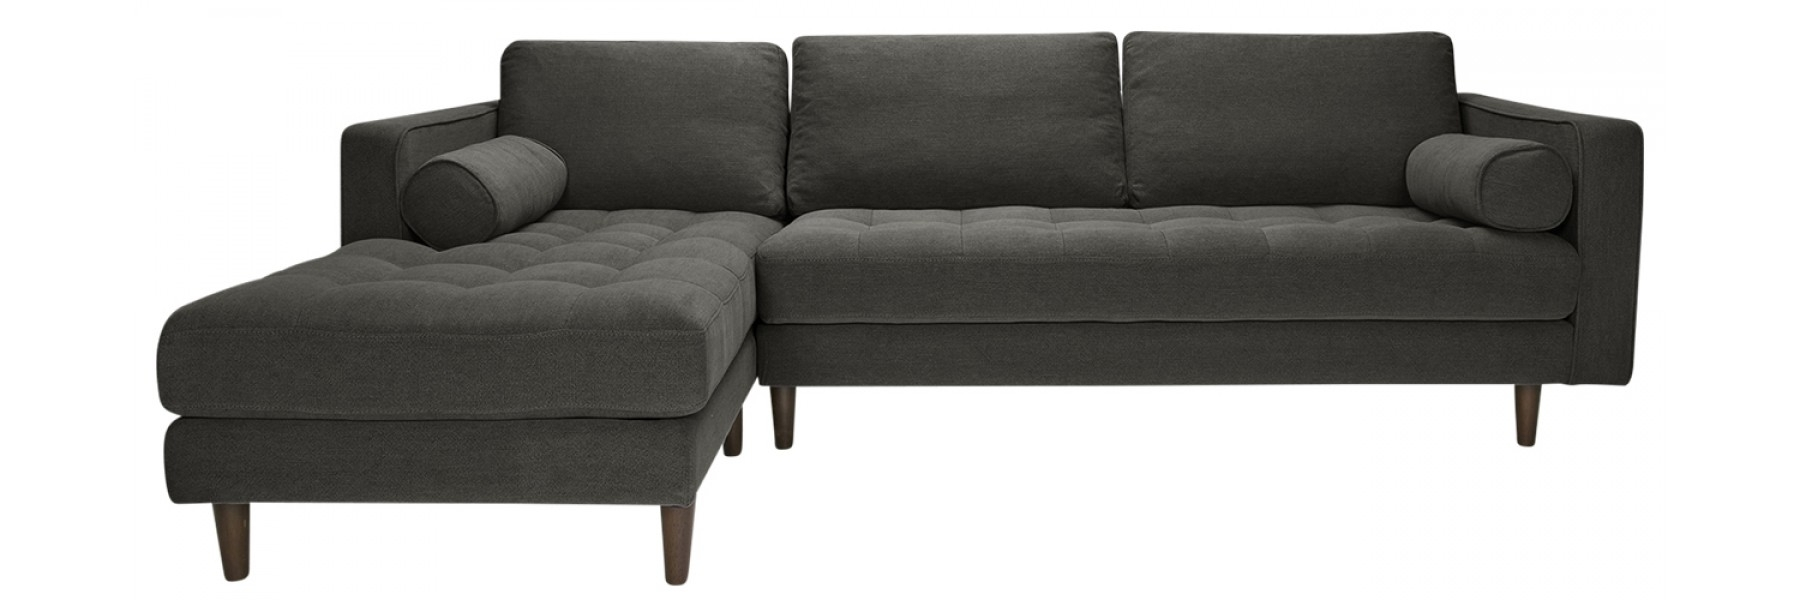 Sawyer Laf Sectional Stoned Slate In Sierra Down 3 Piece Sectionals With Laf Chaise (View 22 of 30)